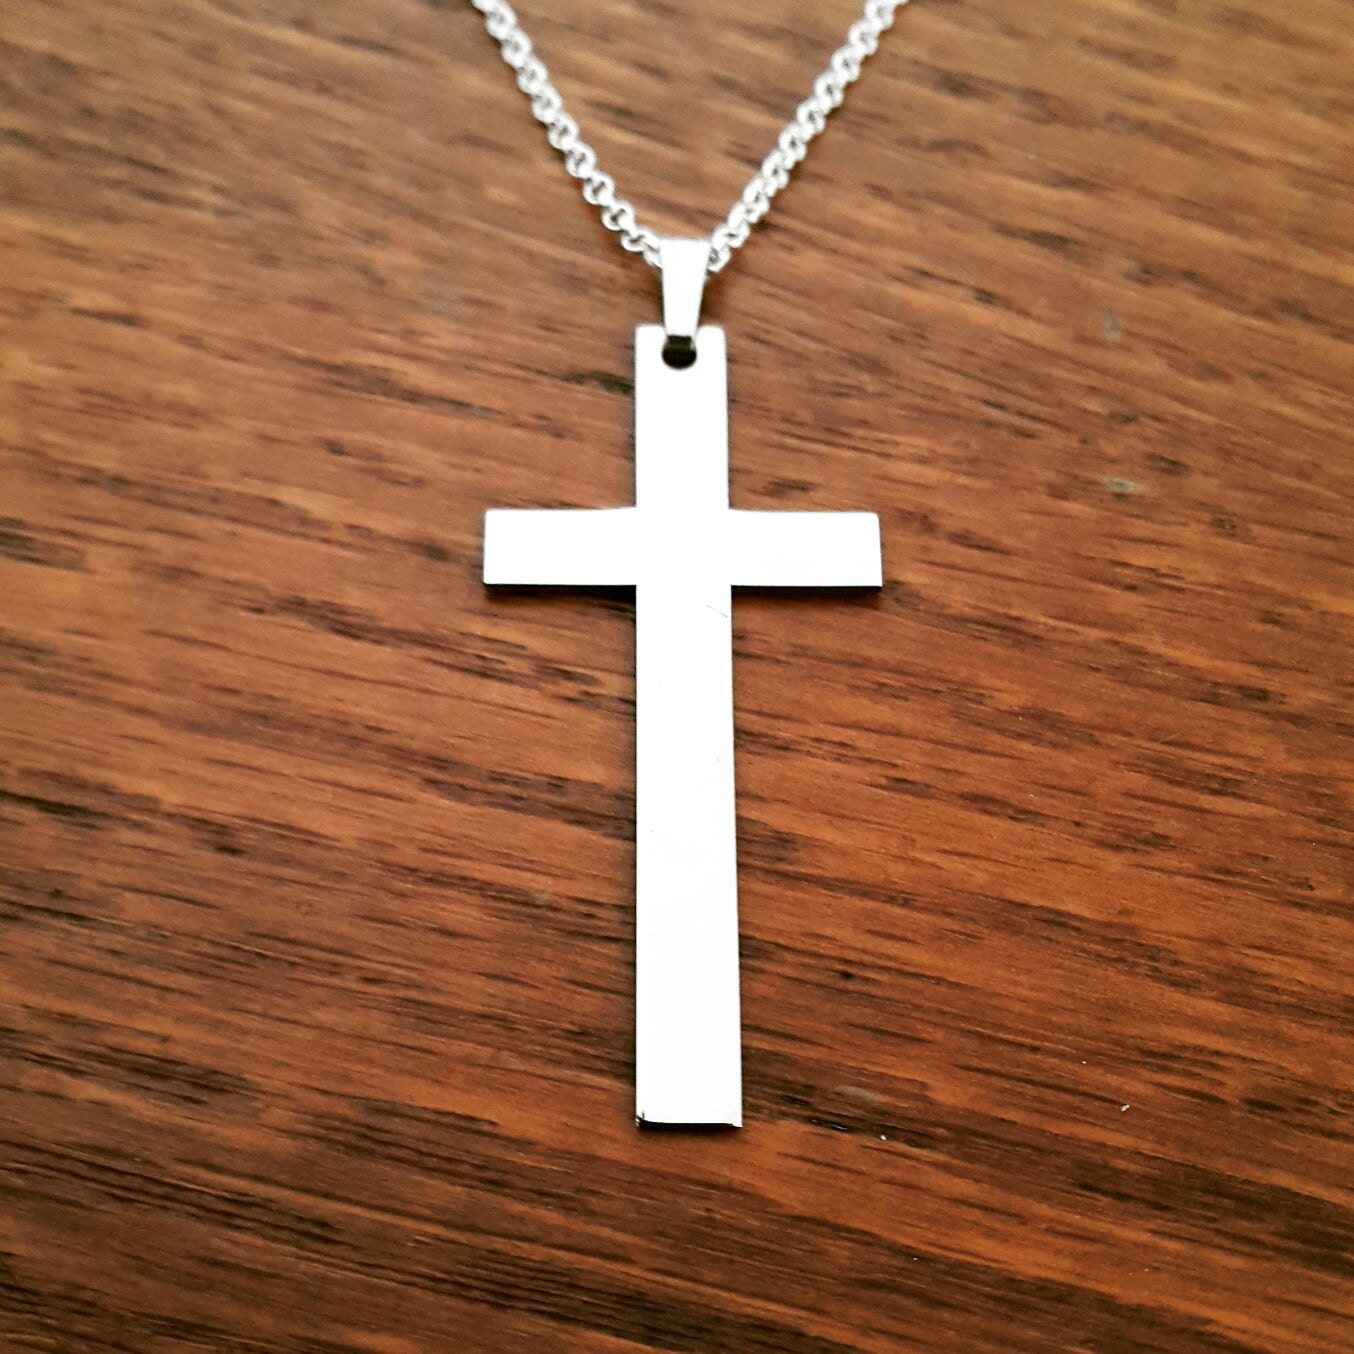 mens cross necklace for men silver cross necklace mens. Black Bedroom Furniture Sets. Home Design Ideas